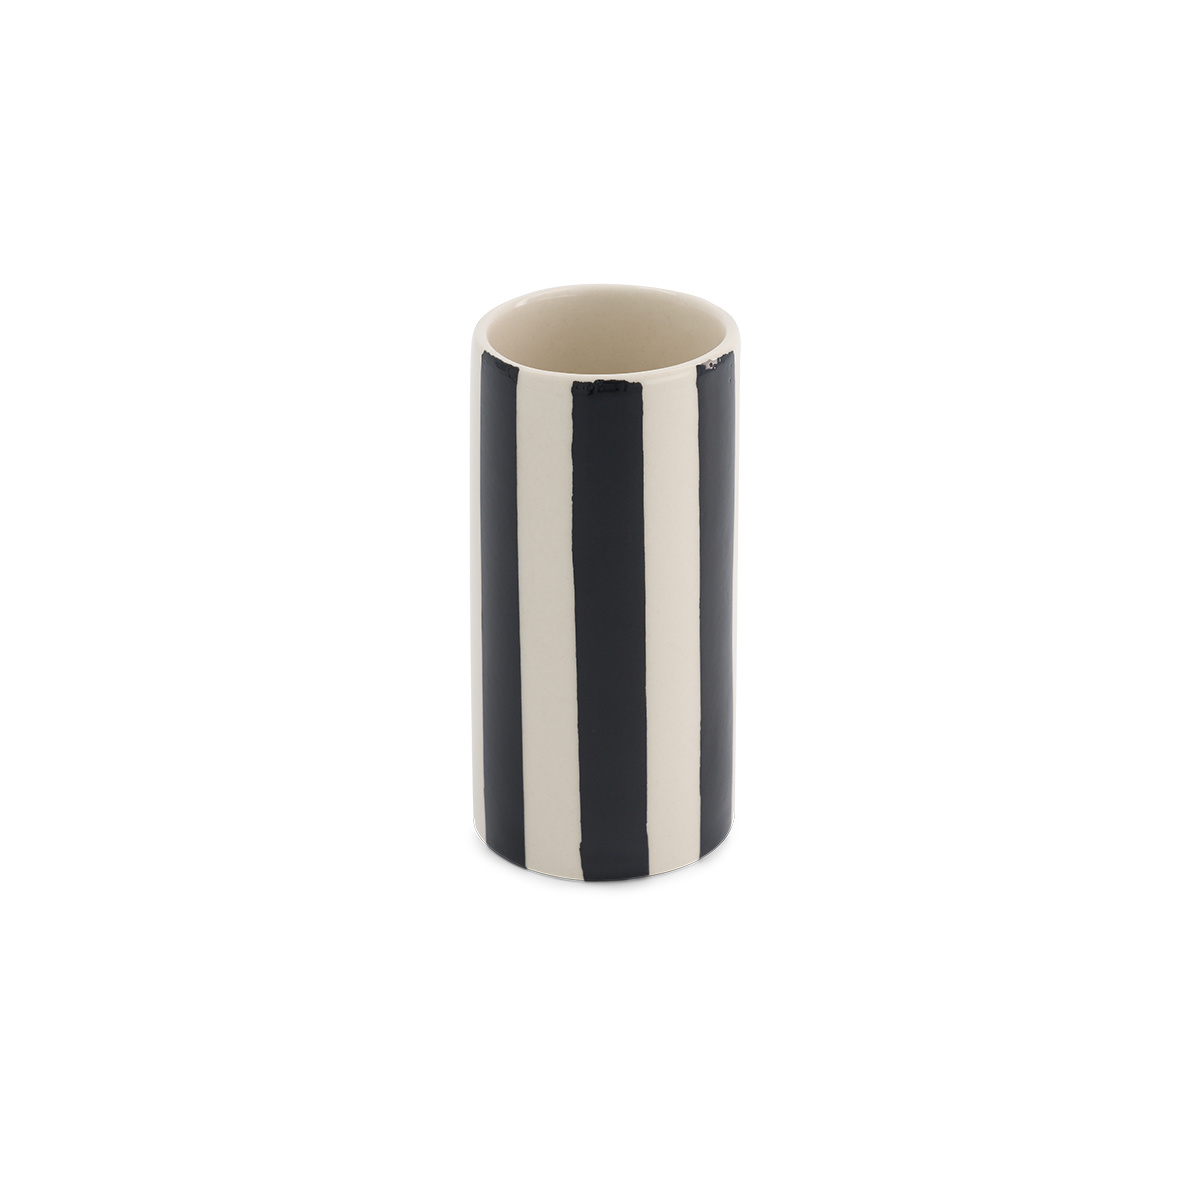 Domino pot small model with black pattern